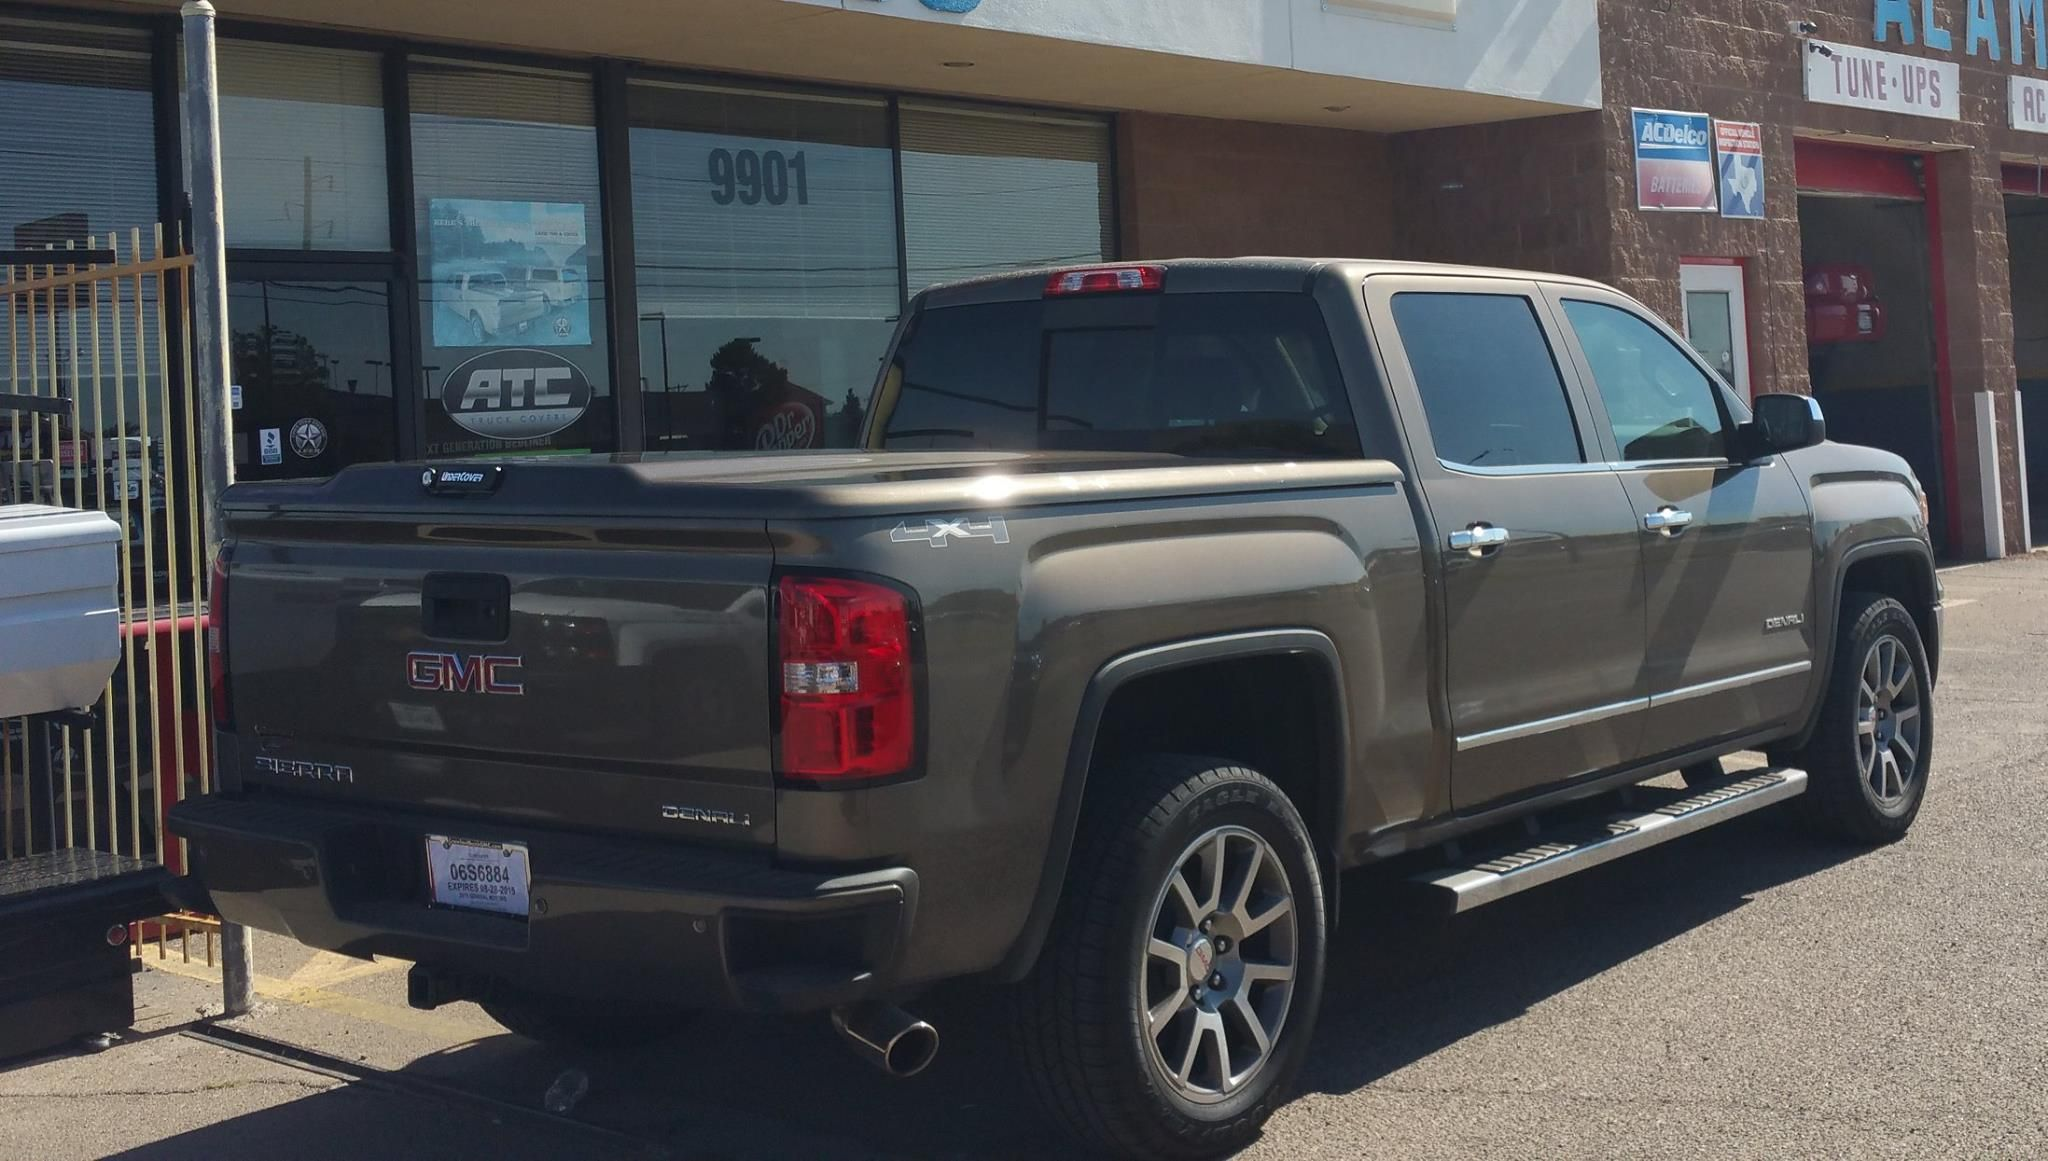 Flawless Paint Match On This 15 Gmc Denali With Our Elite Lx